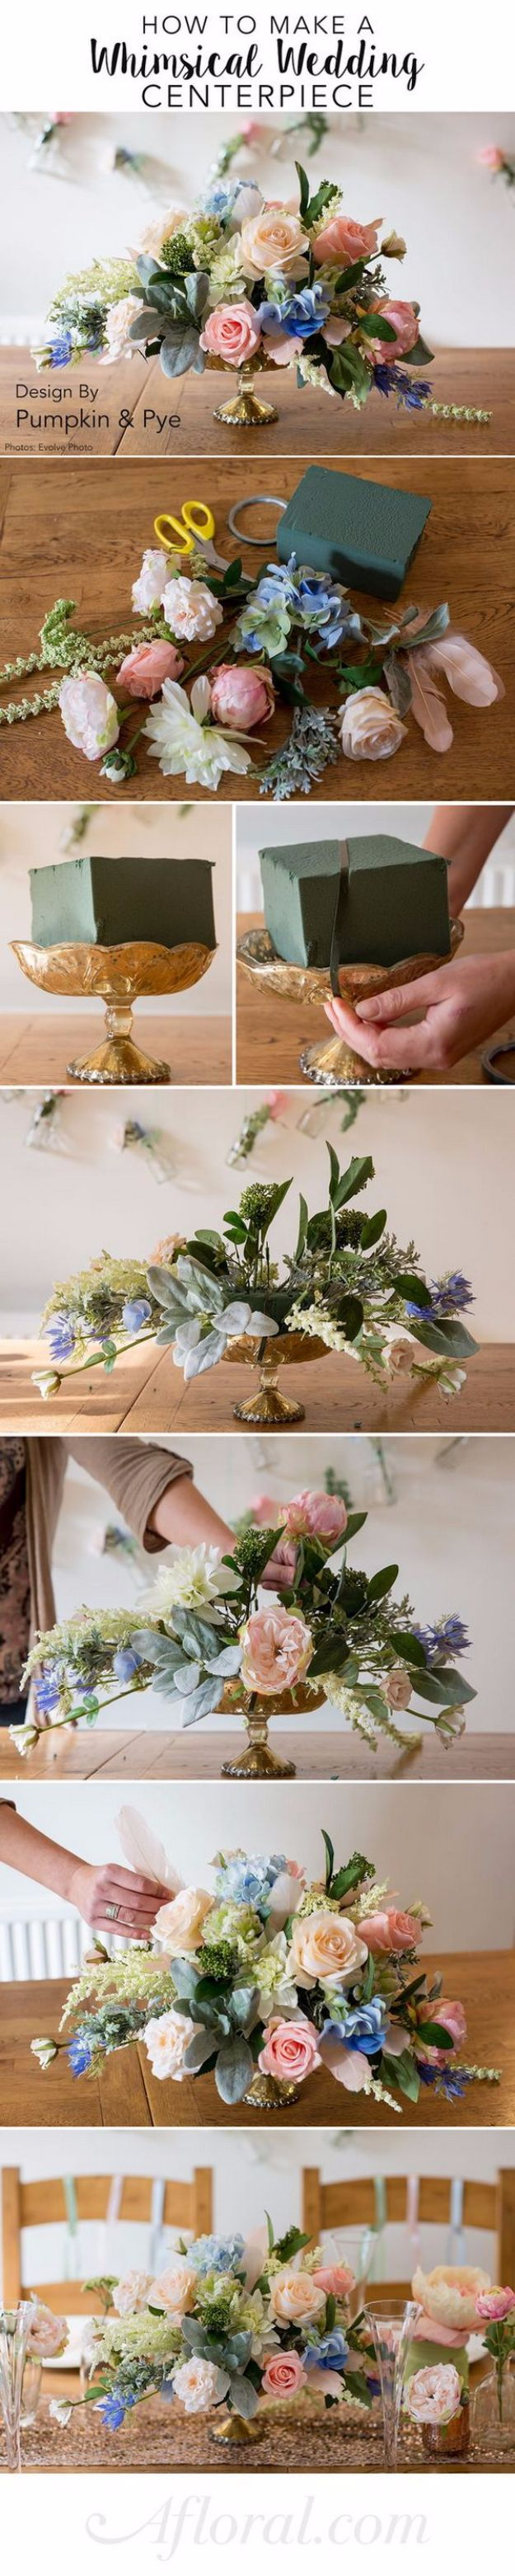 33 best diy wedding centerpieces you can make on a budget diy joy diy wedding centerpieces diy whimsical wedding centerpiece do it yourself ideas for brides and junglespirit Choice Image